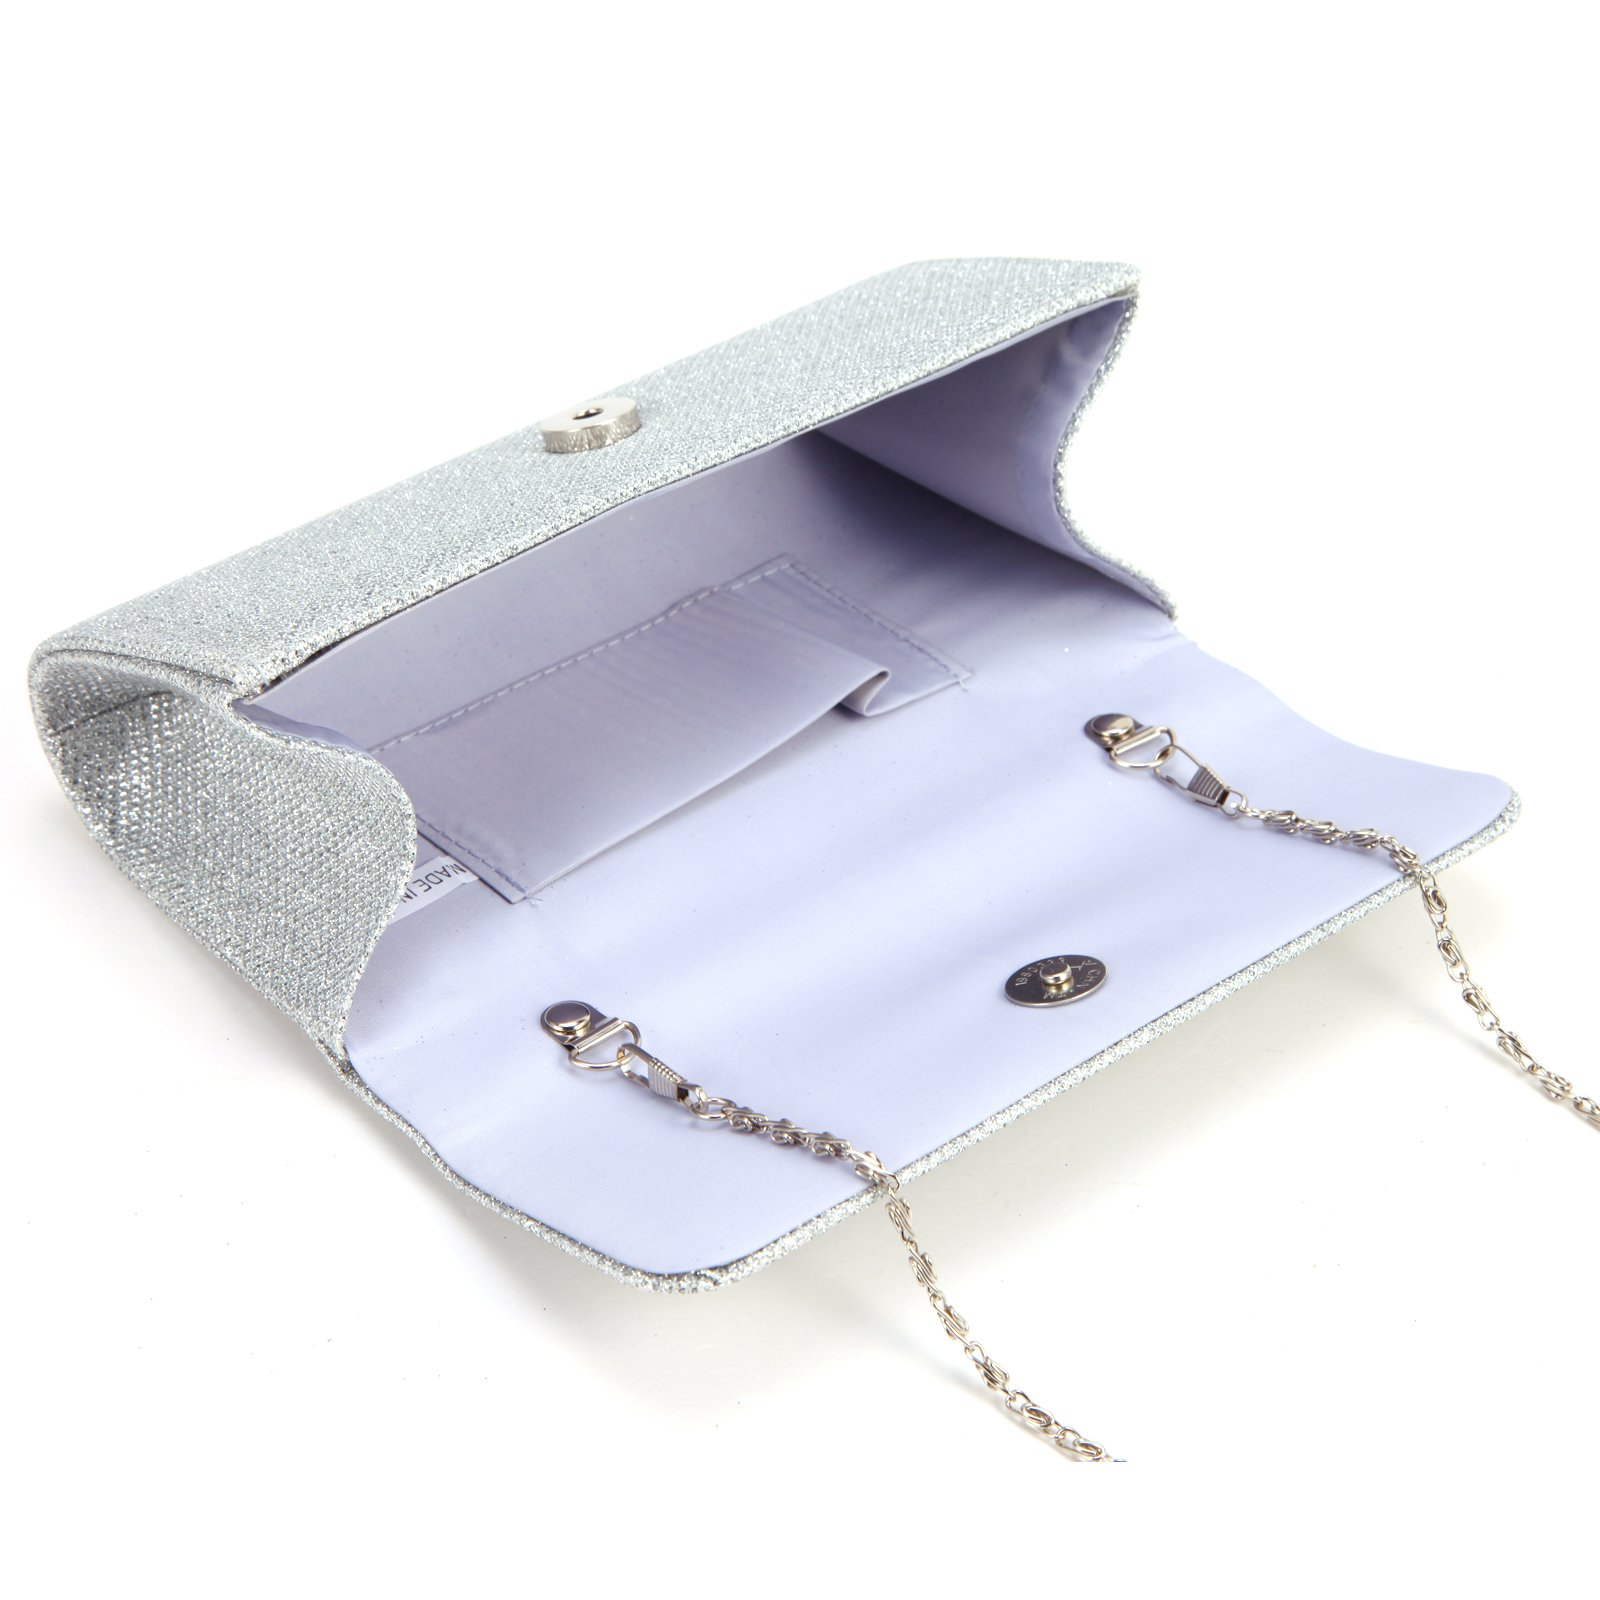 Ladies Evening Party Small Clutch Bag Bridal Purse Handbag Cross Body Tote by Anladia (Image #4)